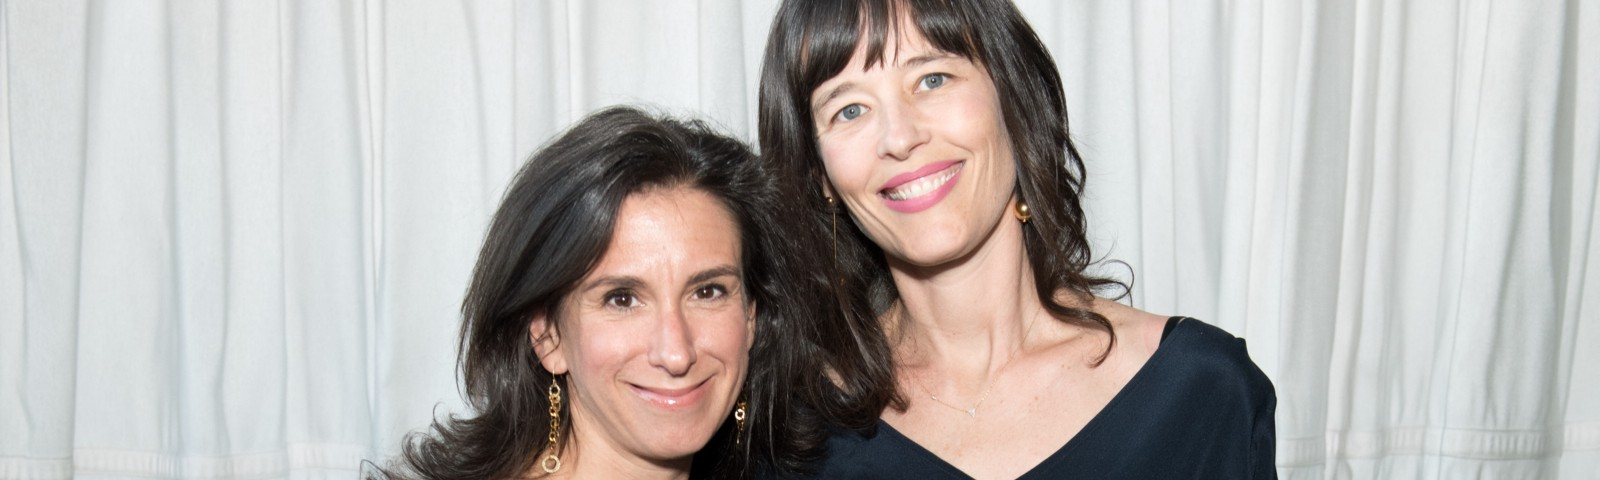 Investigative journalists Jodi Kantor and Megan Twohey pose for a photo at the Brilliant Minds Initiative dinner in 2018.